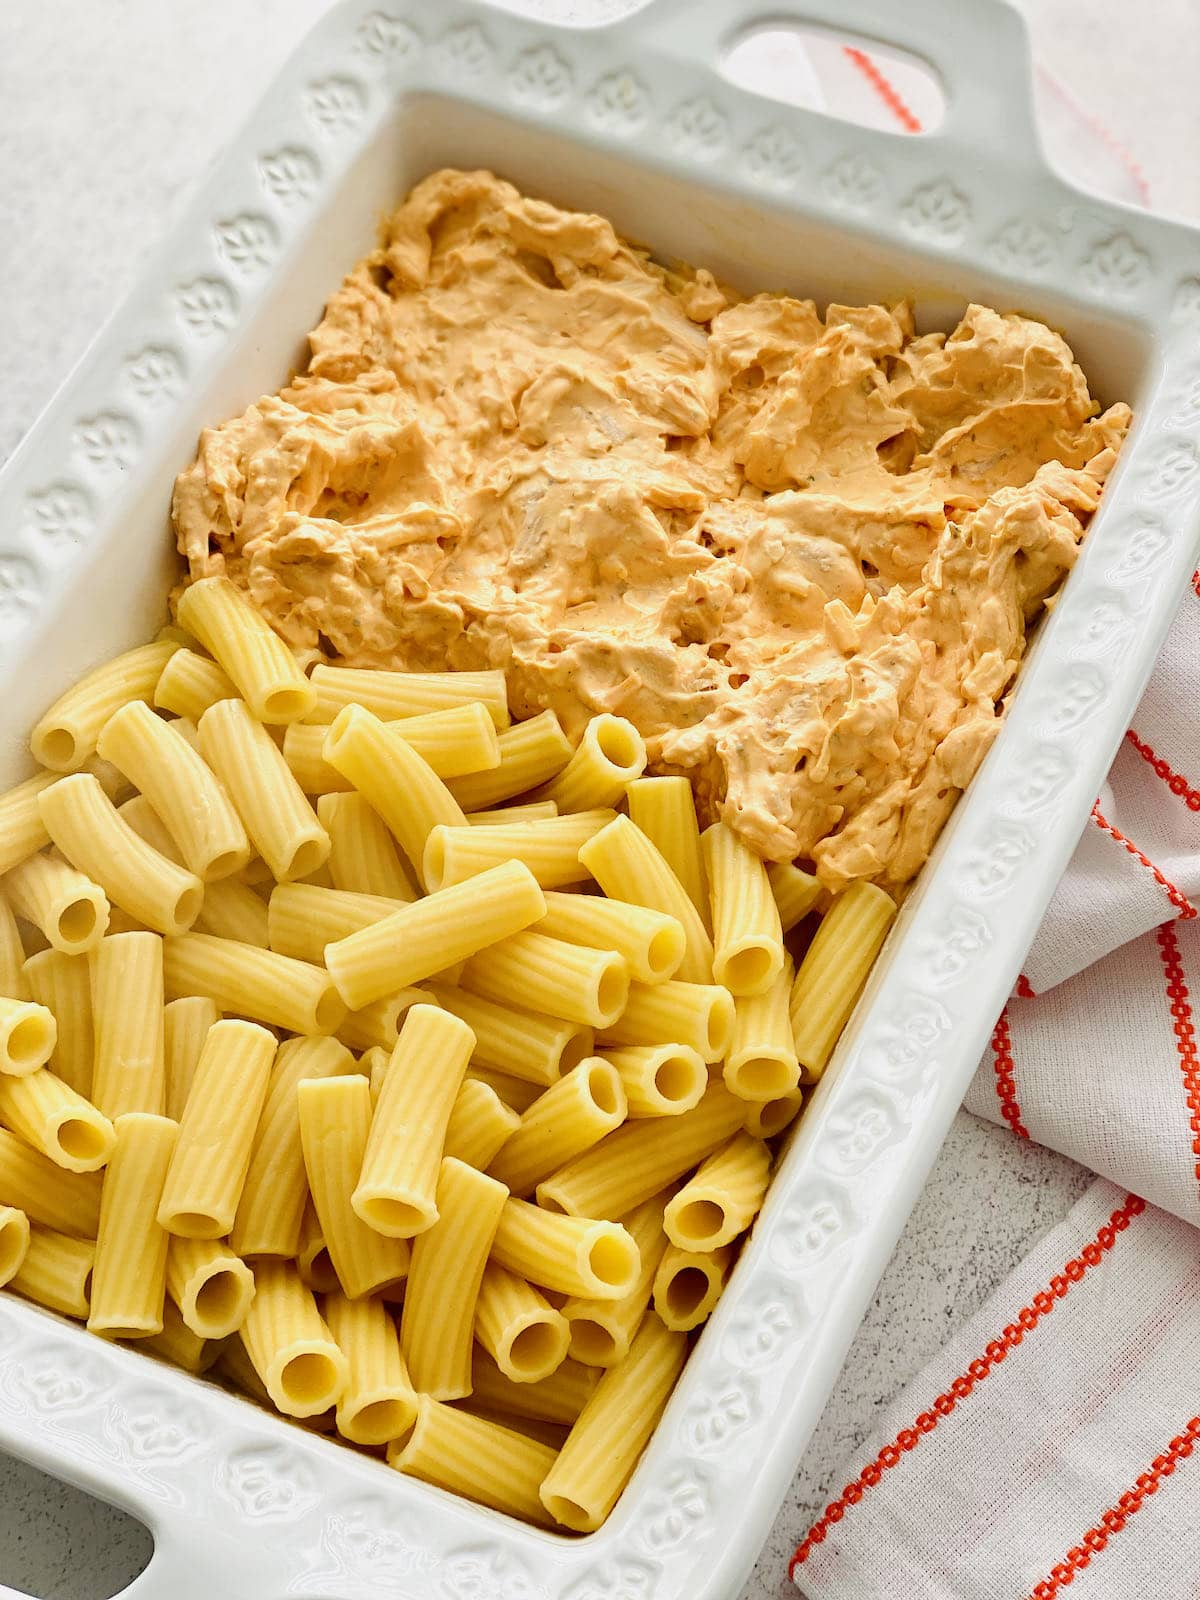 pasta and buffalo chicken dip together side by side in a white dish.